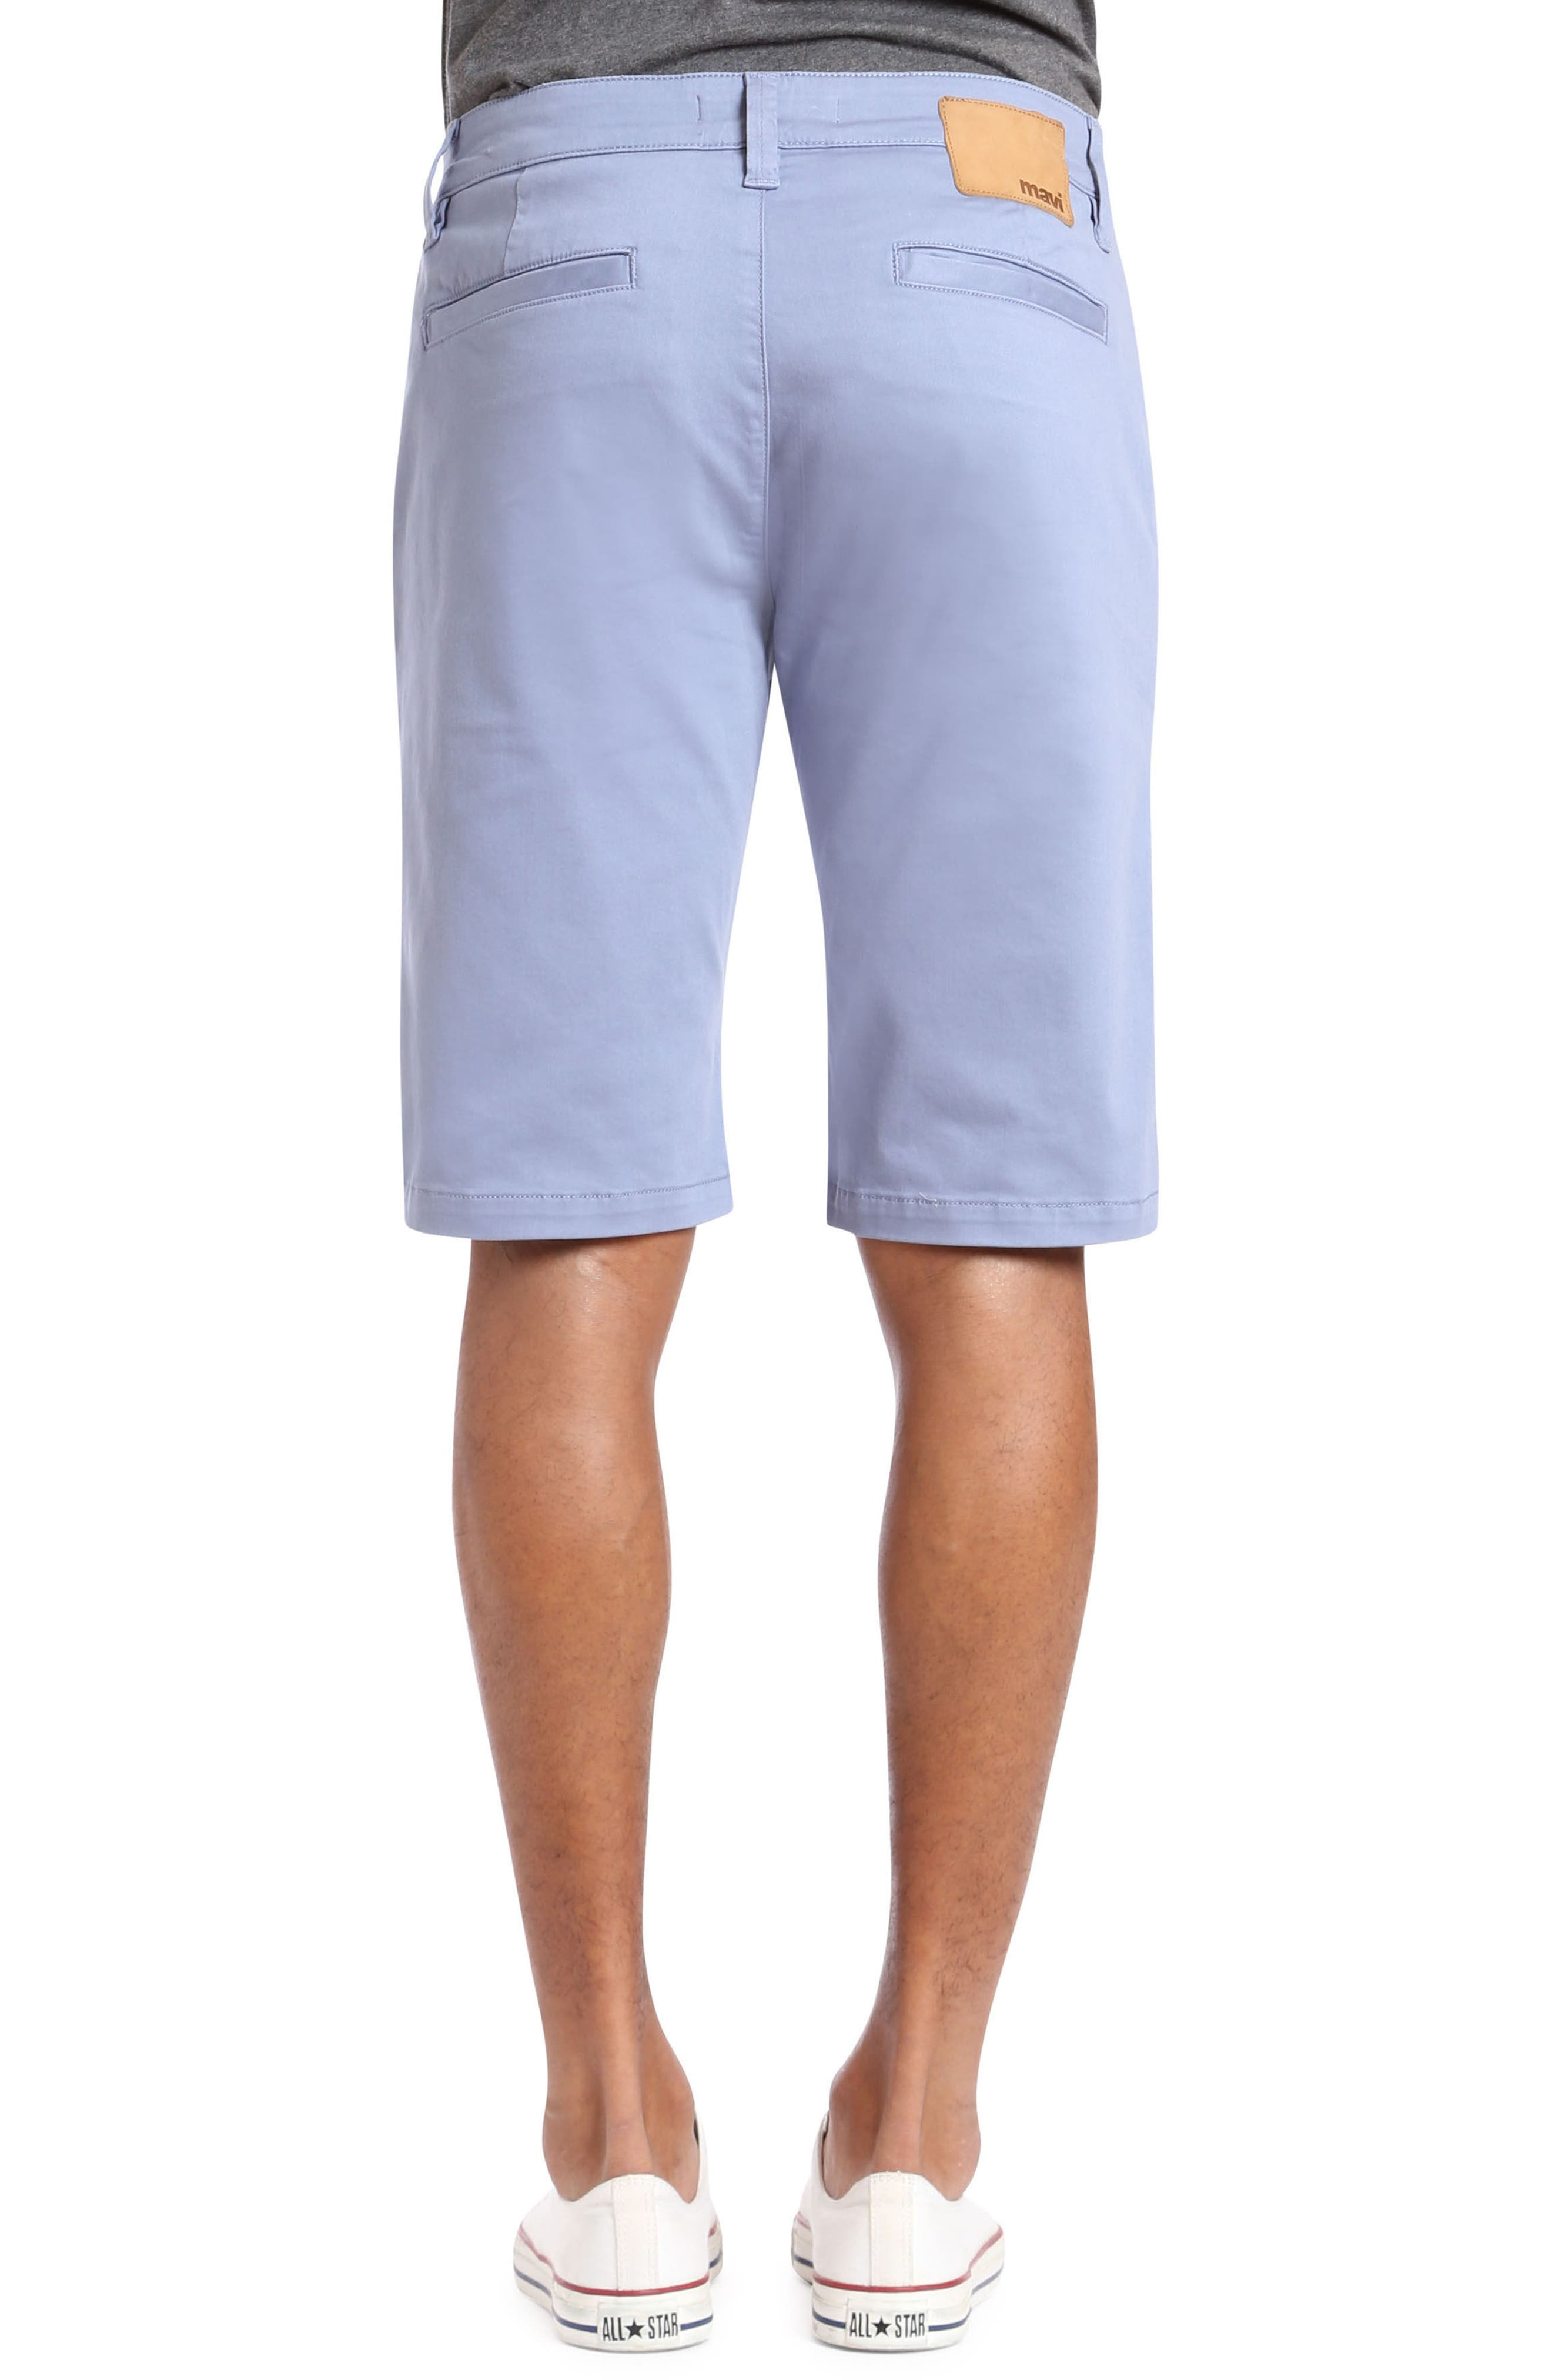 Jacob Twill Shorts,                             Alternate thumbnail 2, color,                             Stone Washed Twill